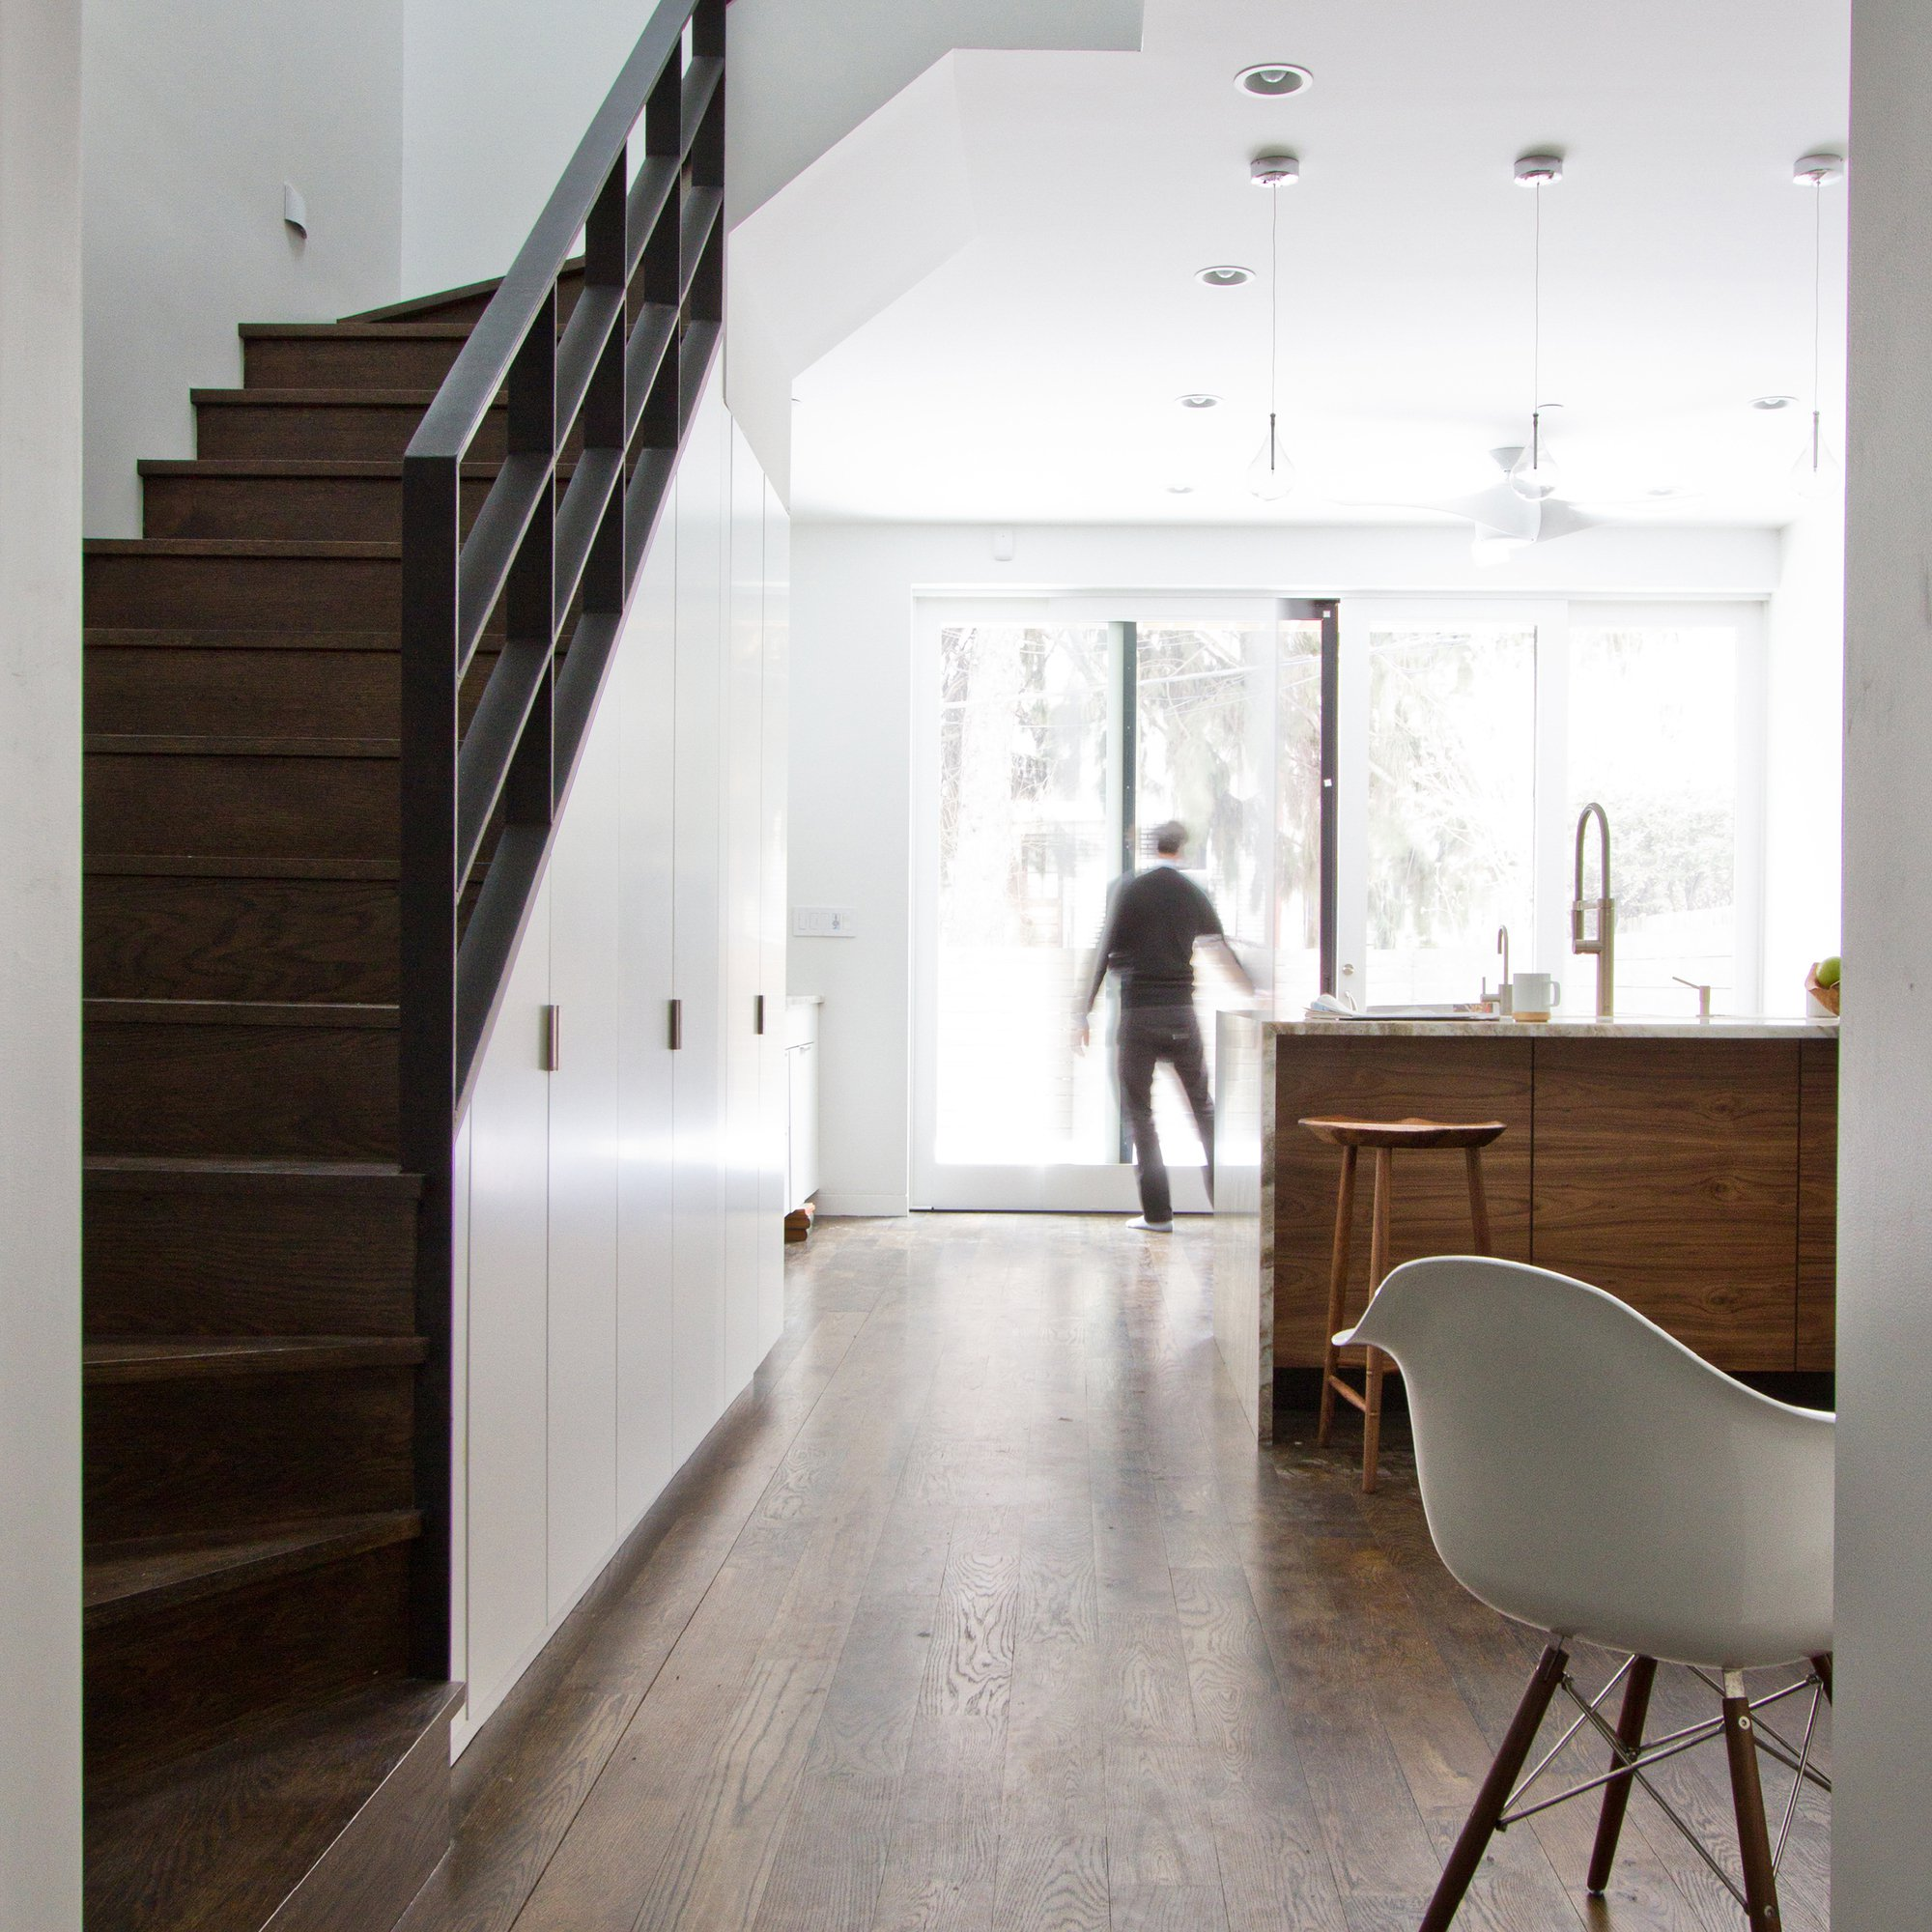 54f79678e58ecee84d0001c3_brooklyn-row-house-office-of-architecture_05_after_livingspace